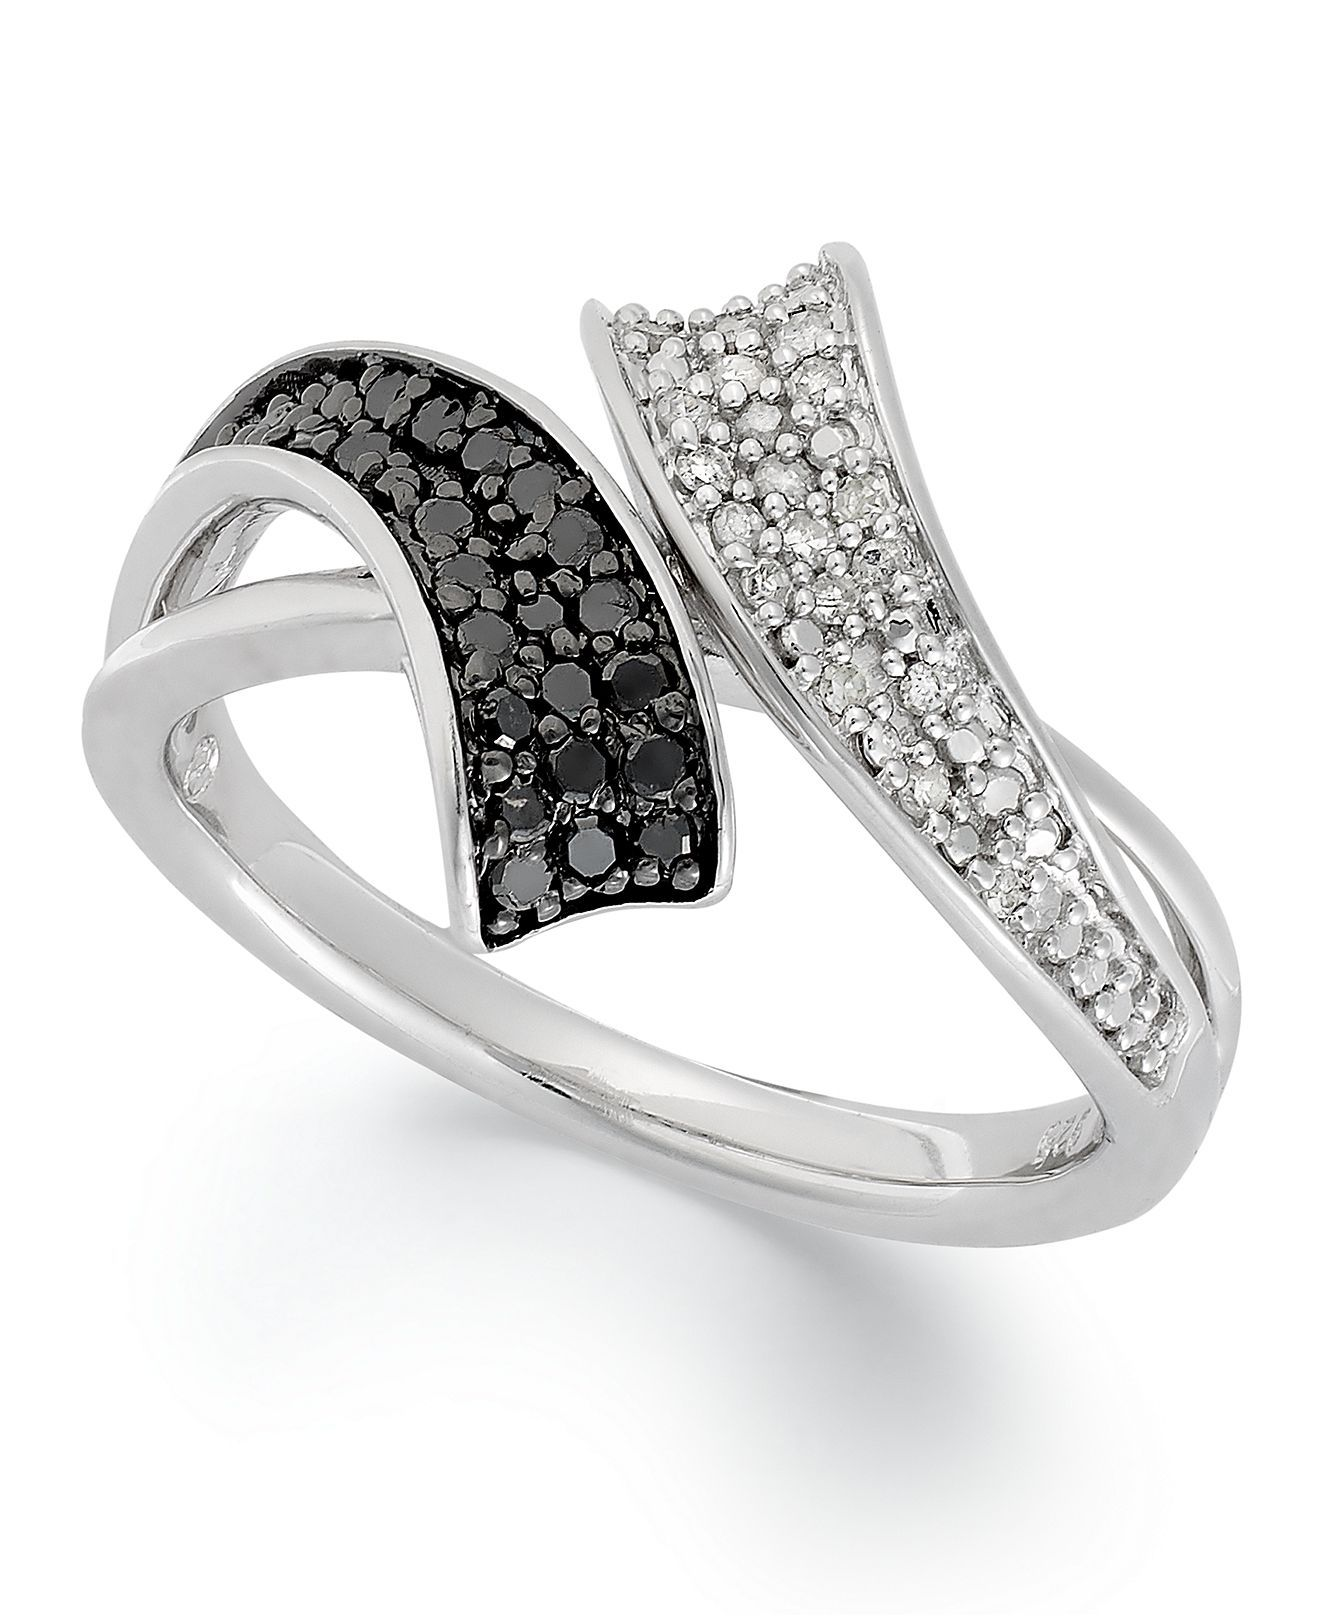 Sterling Silver Ring, Black and White Diamond Bypass Ring